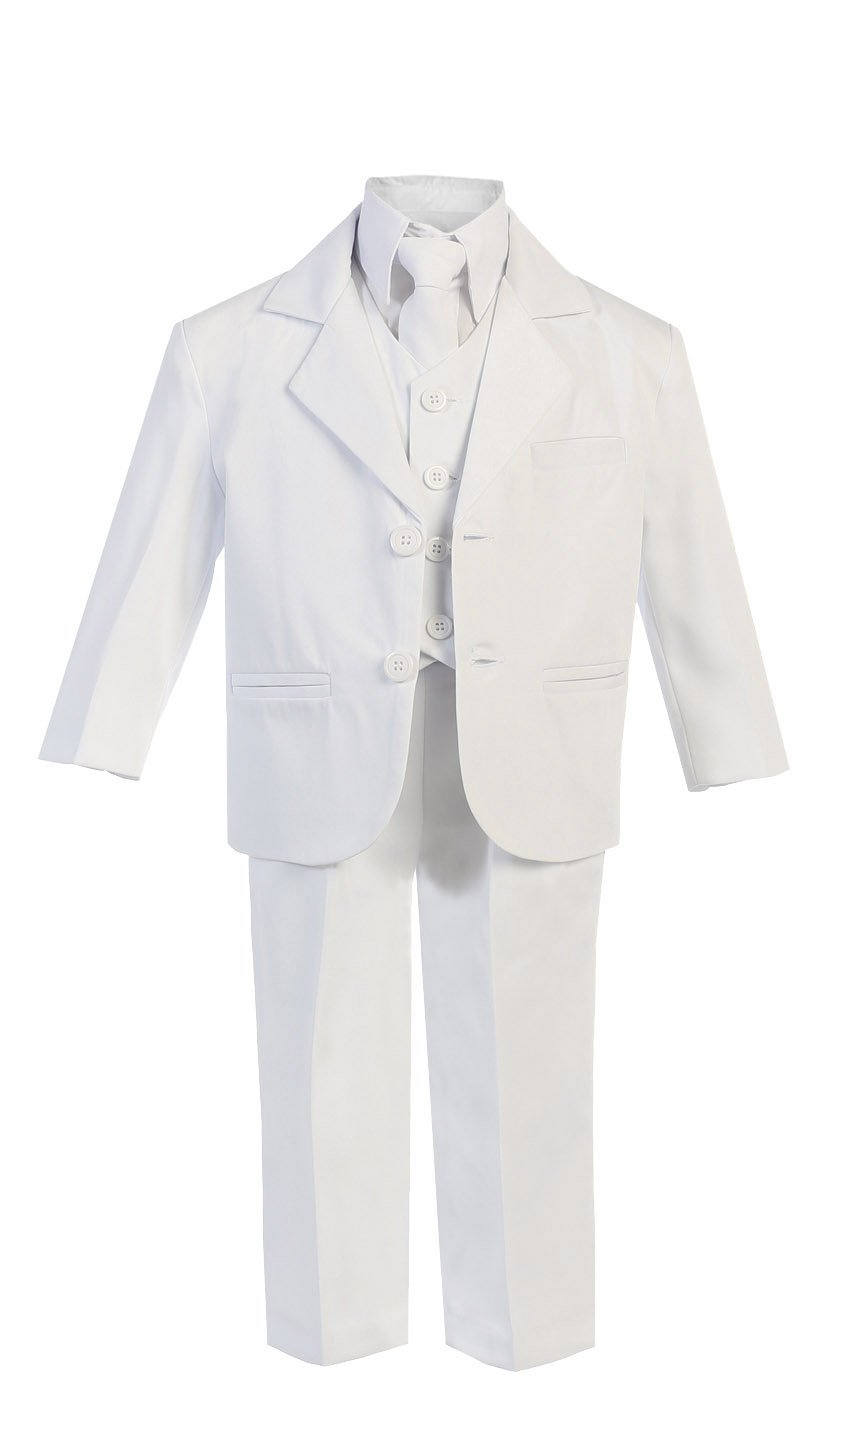 5 Piece Boy's Dress Suit with Shirt, Vest, and Tie (14H, White)